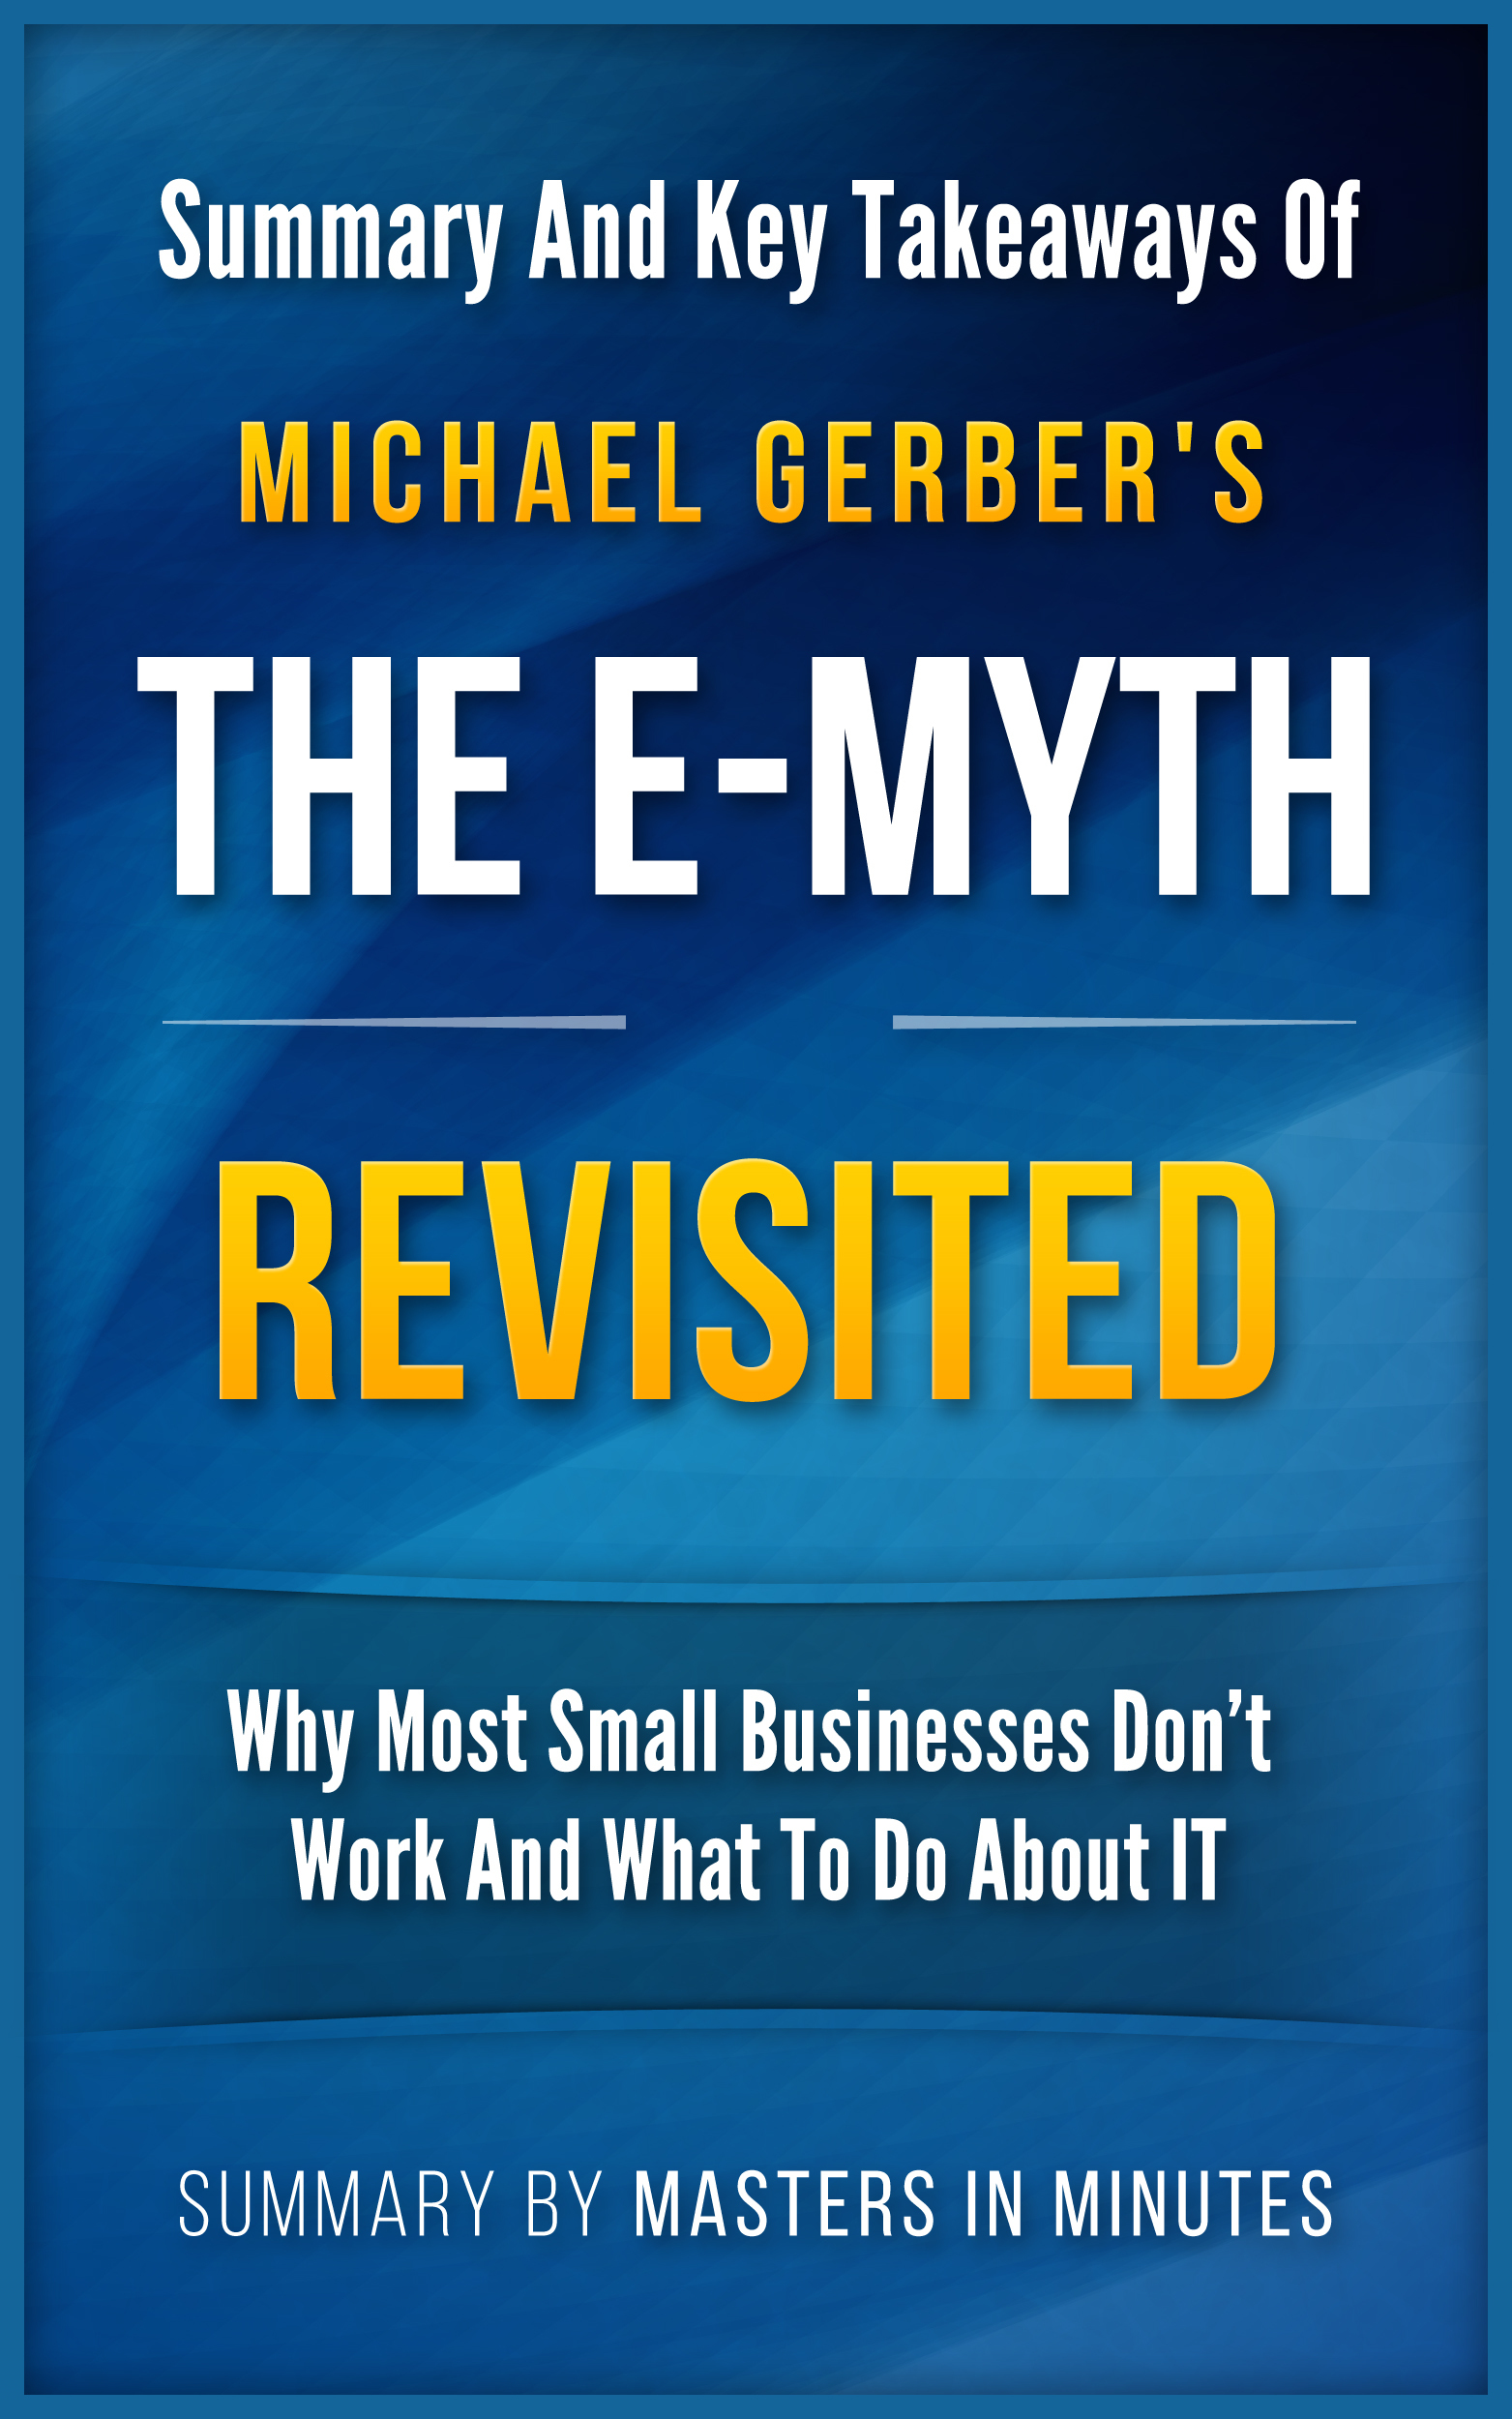 The E-Myth Revisited: Why Most Small Businesses Don't Work and What to Do About It | Summary & Key Takeaways in 20 minutes